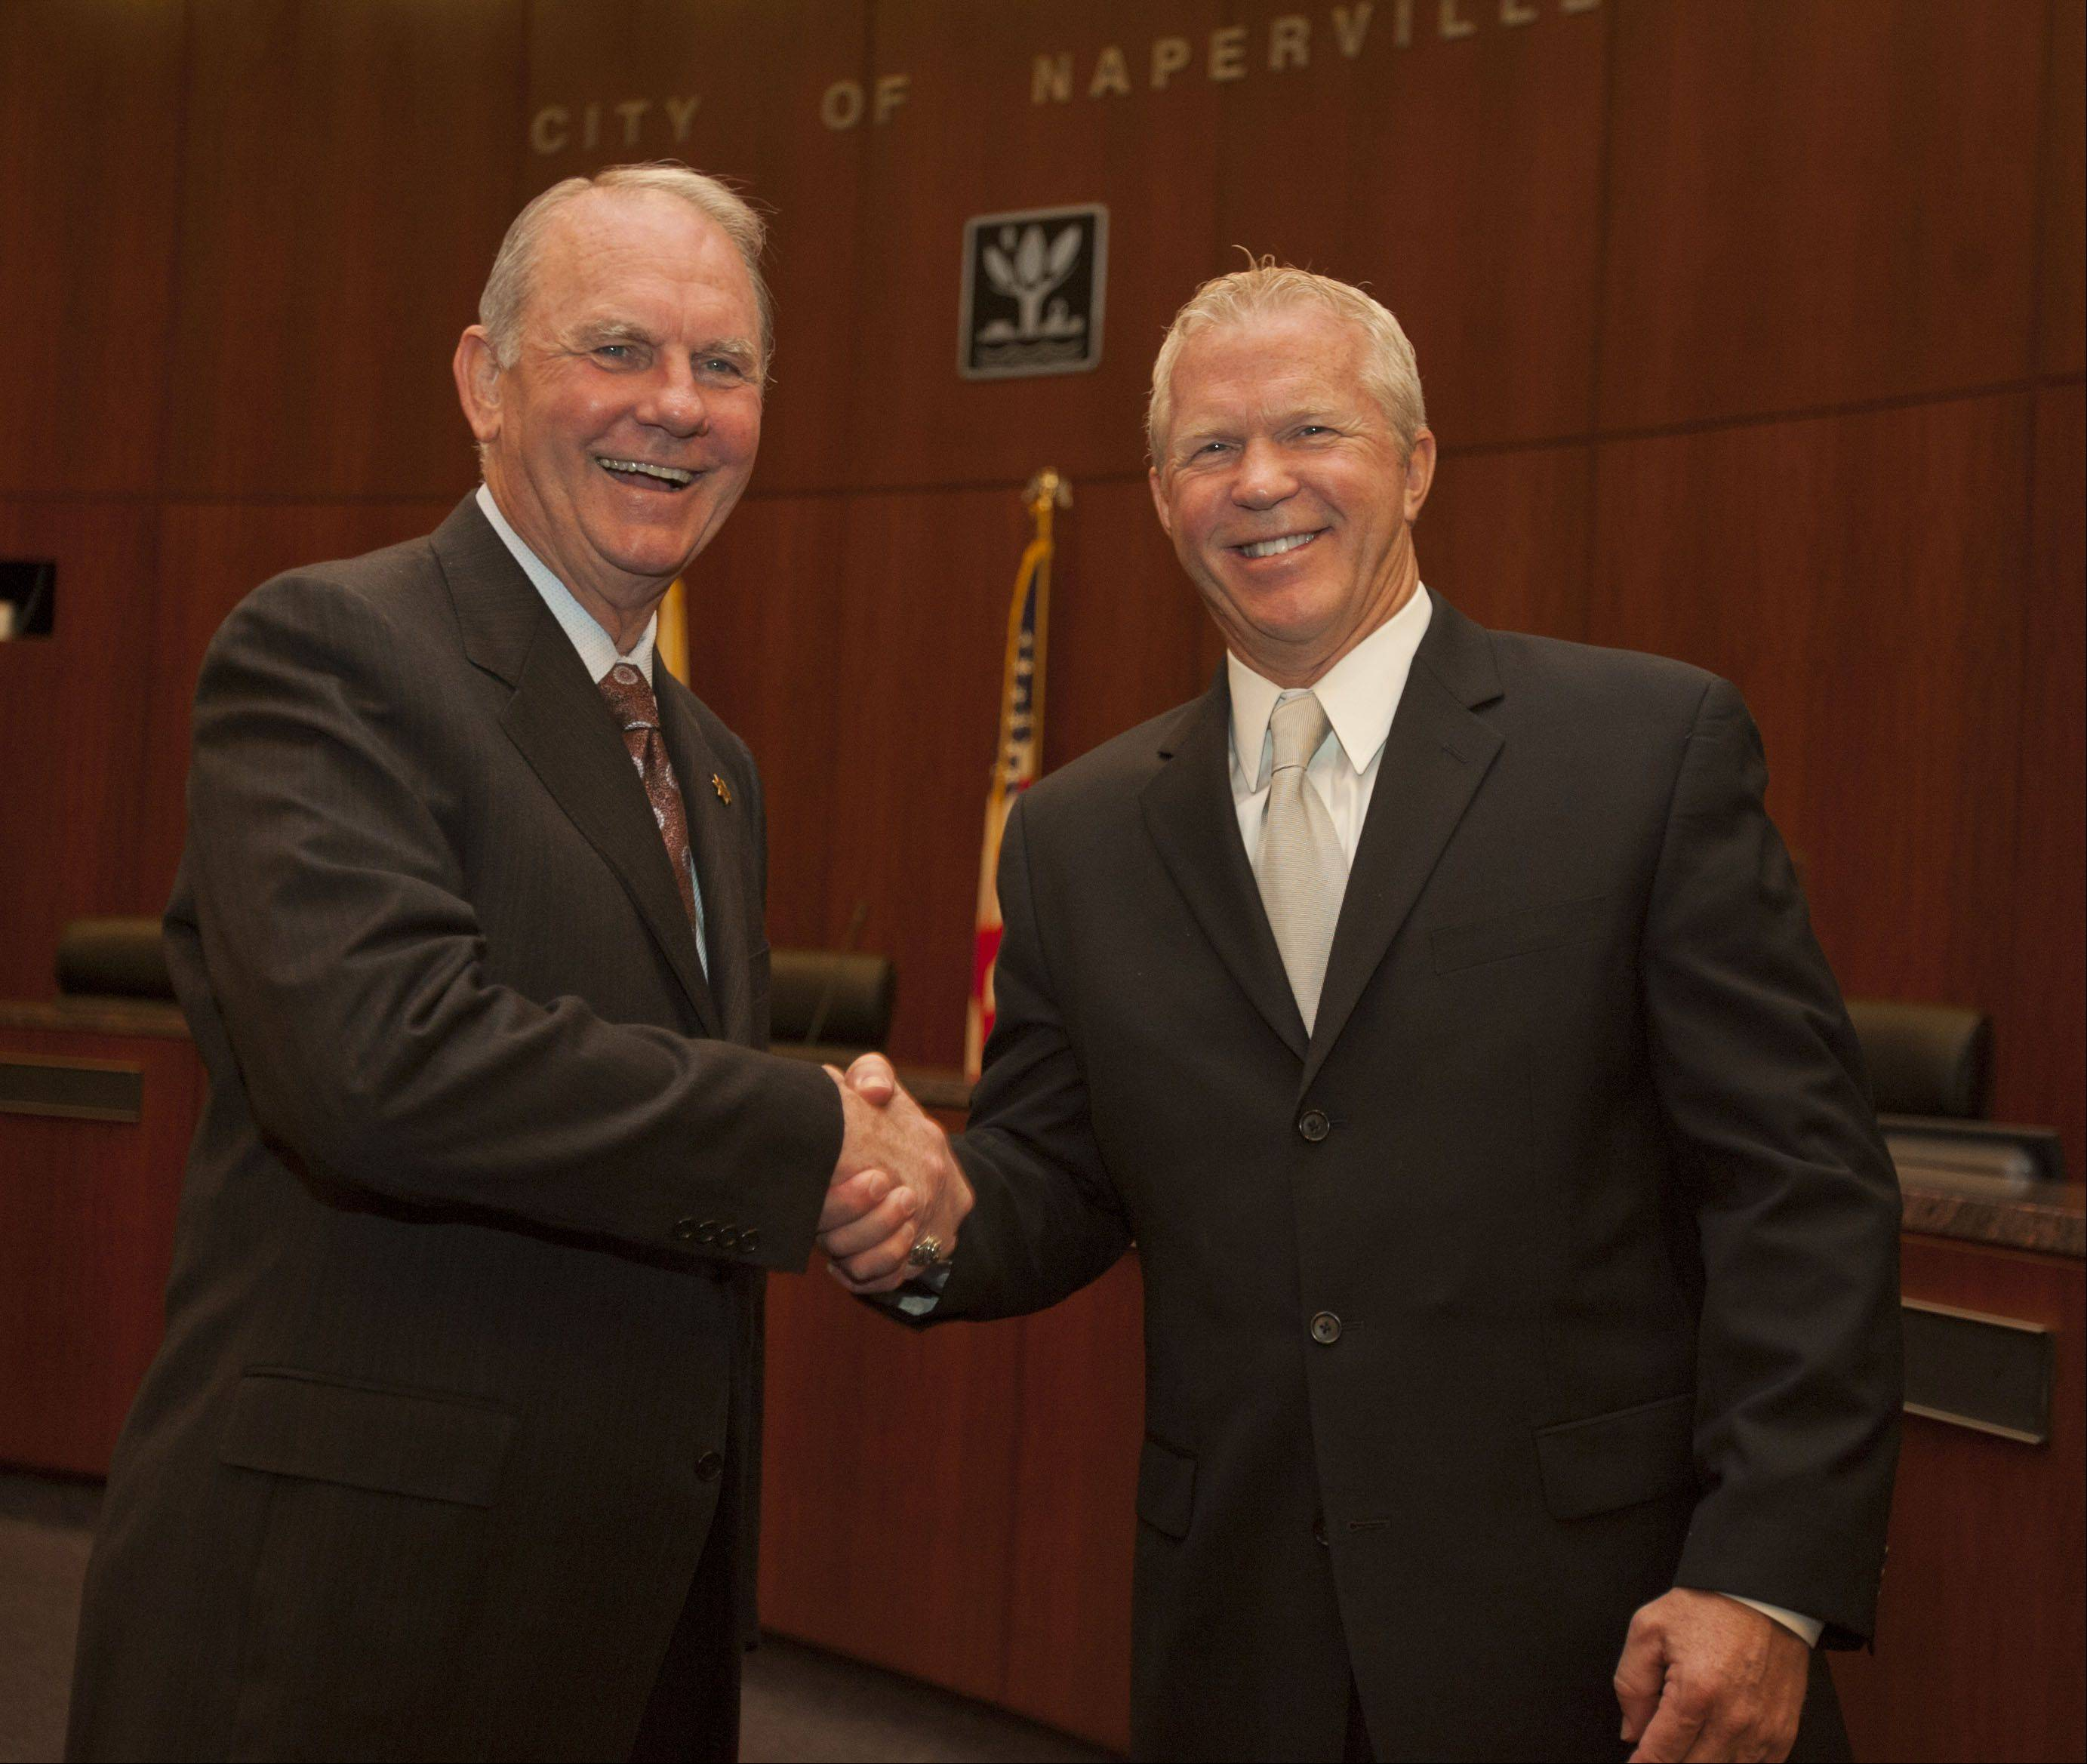 Robert Marshall, right, will succeed retiring Naperville Police Chief David Dial. Marshall takes the reins on May 18.